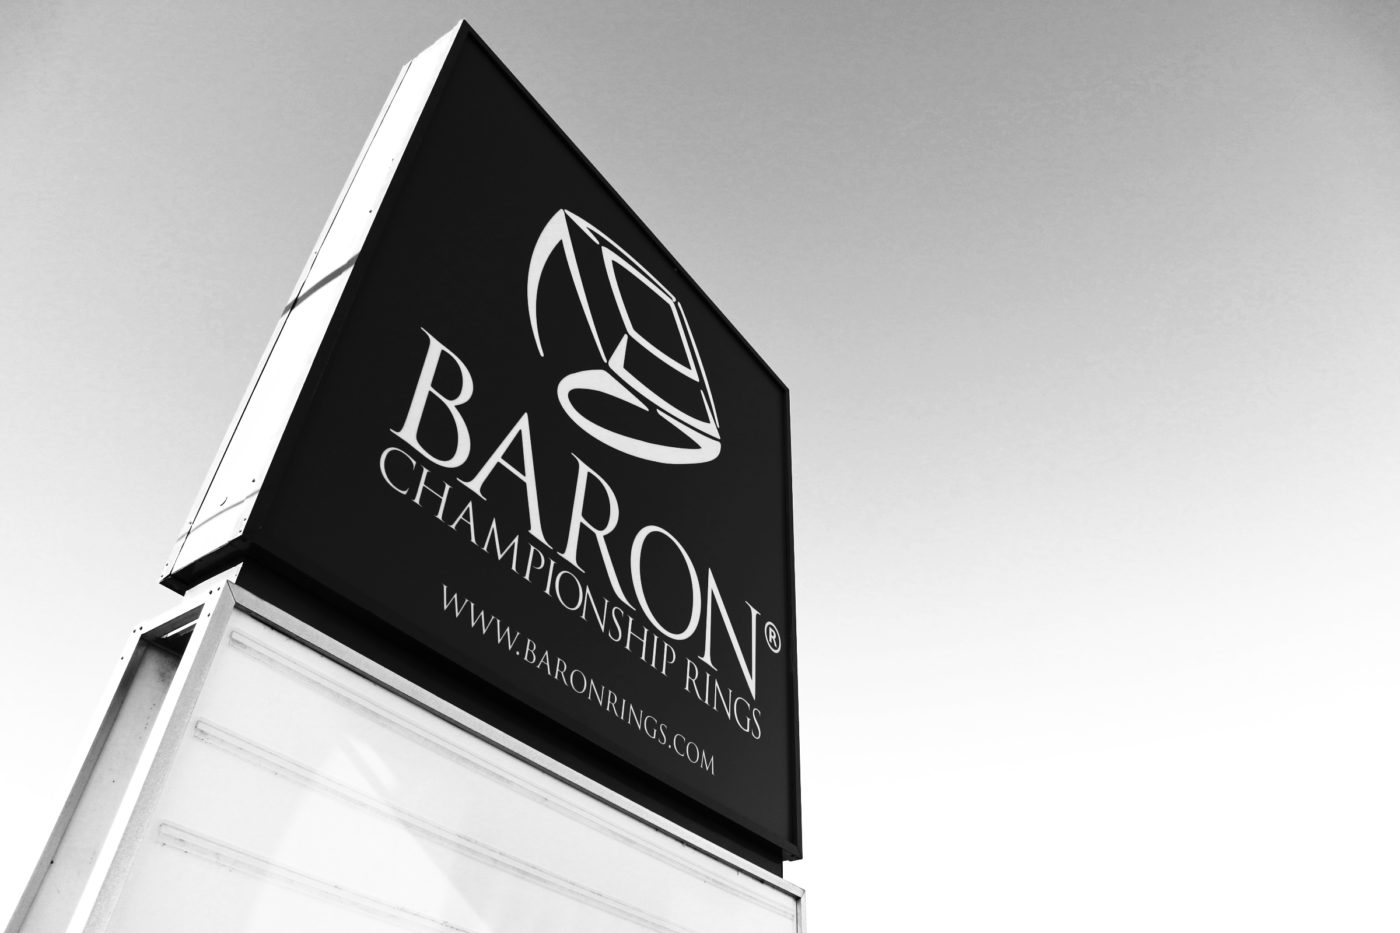 Baron Rings – Adobe XD Project